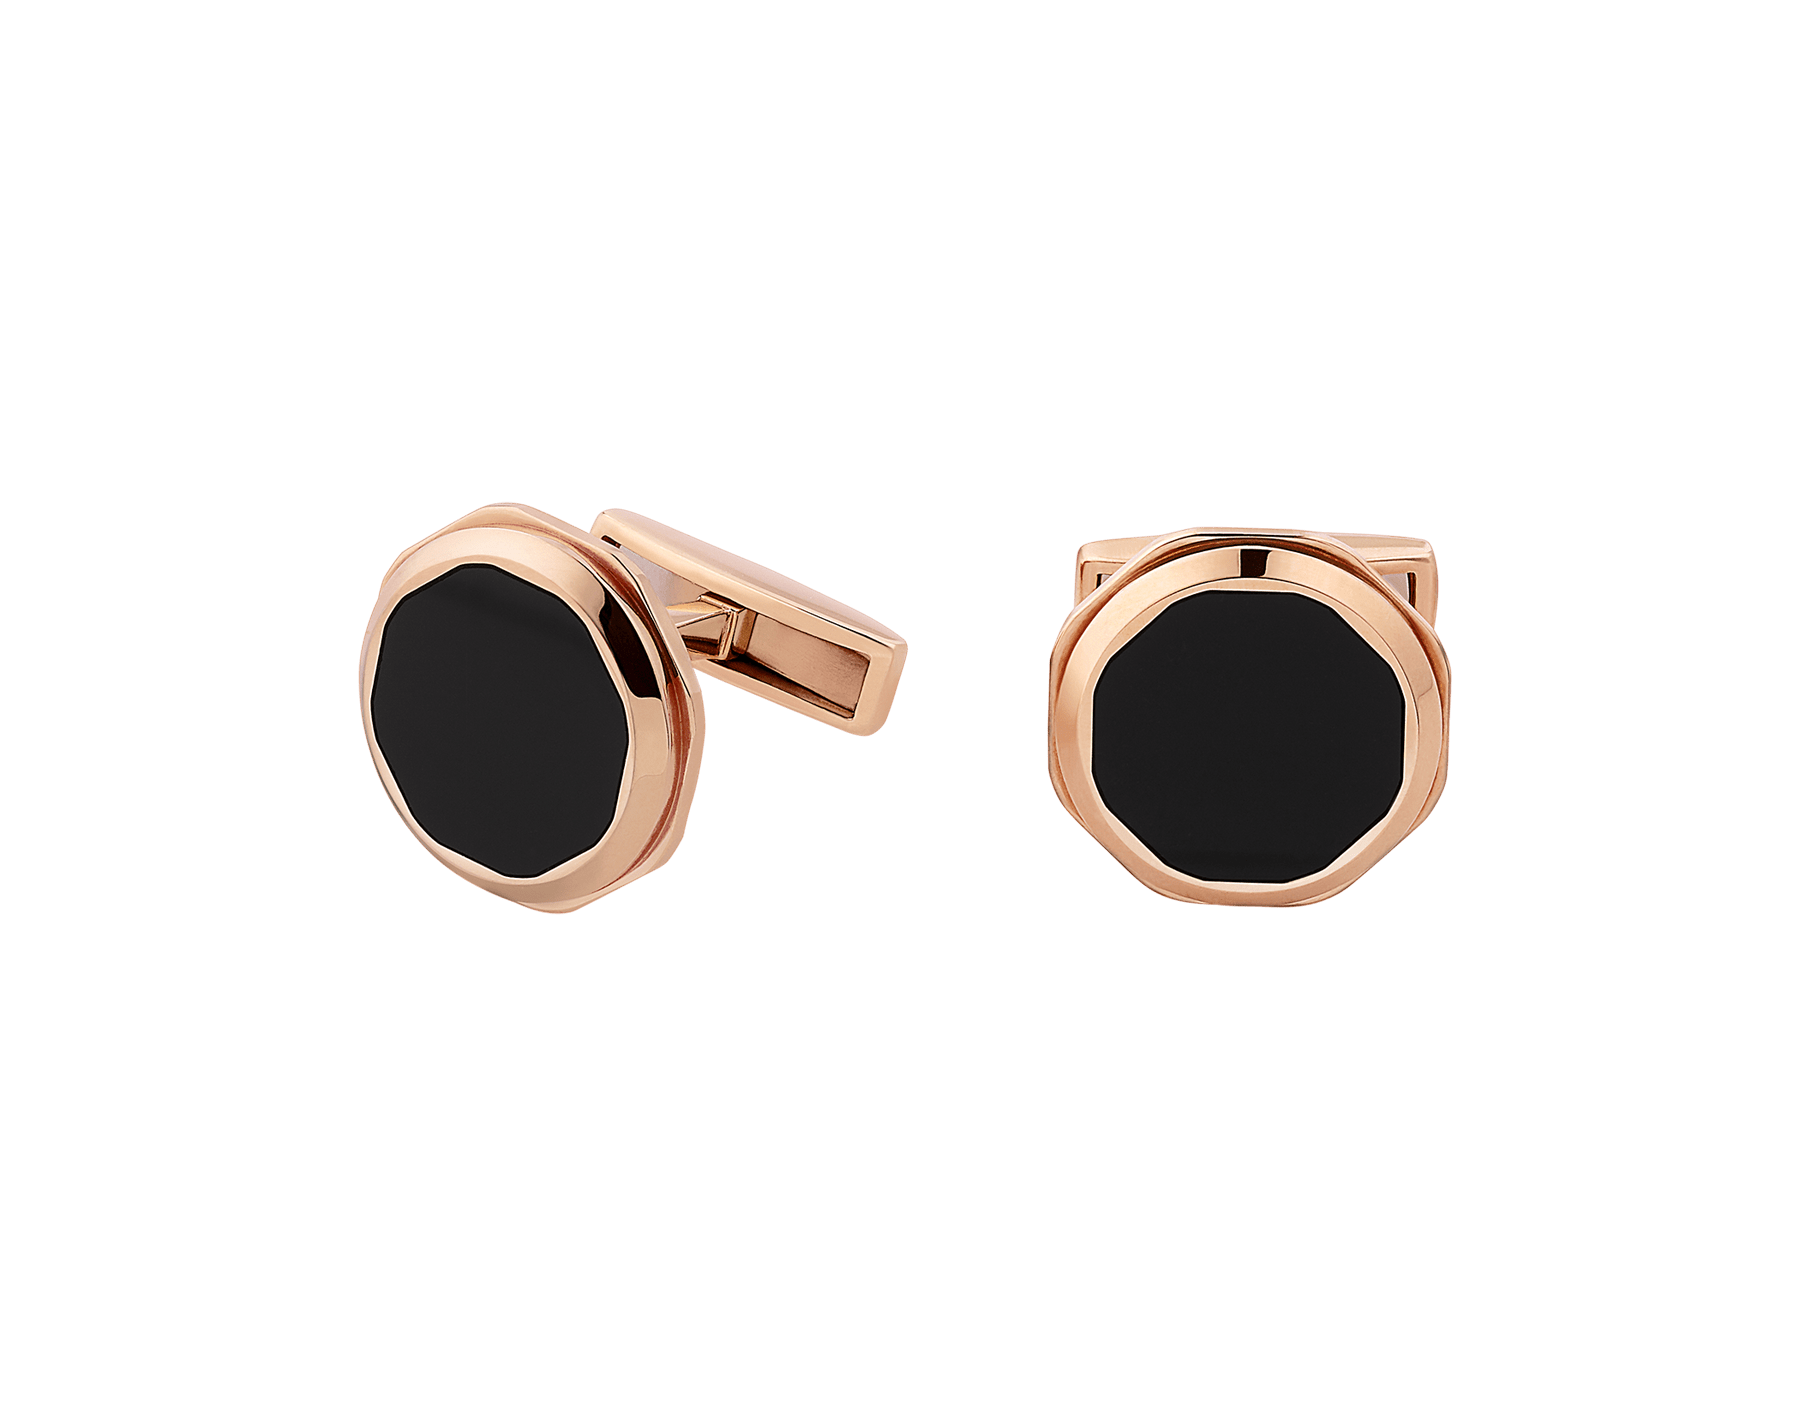 Octo 18 kt rose gold cufflinks set with onyx elements 348330 image 1